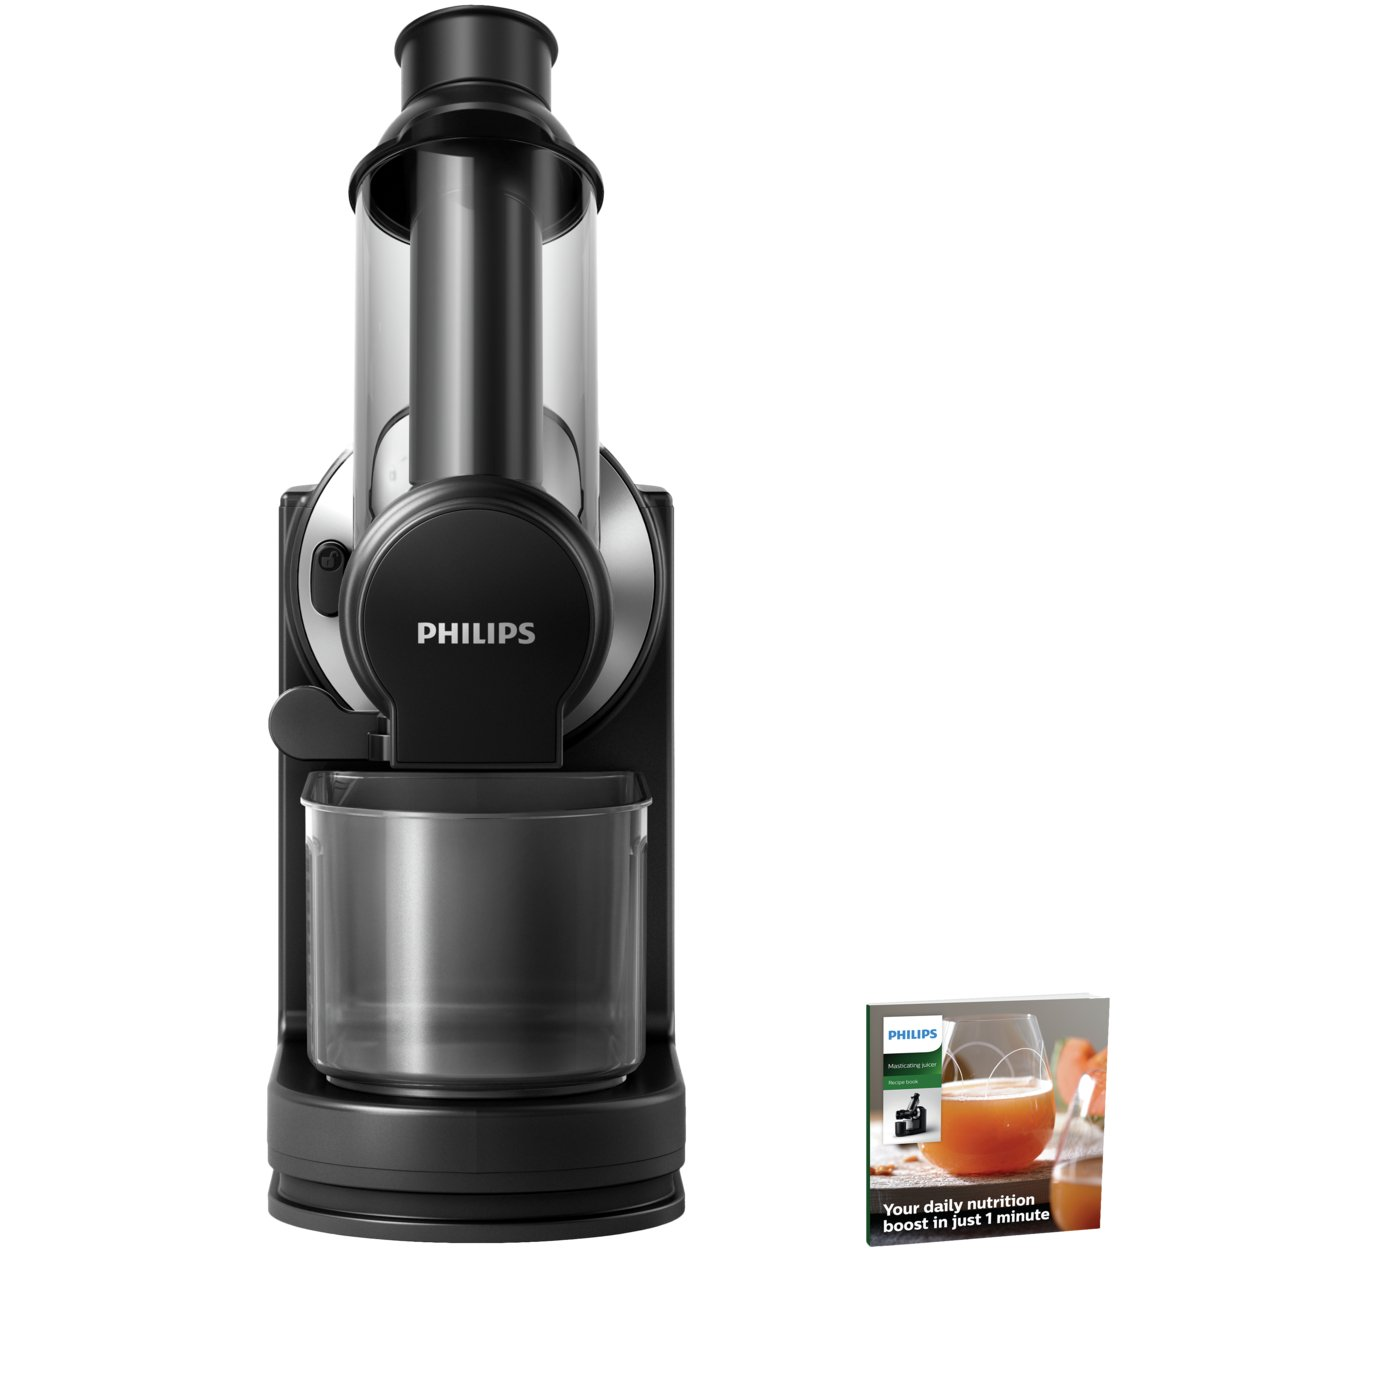 Slow Juicer Philips Hr1897 : Philips viva HR1889/71 Slow Juicer ?239.99 Gay Times